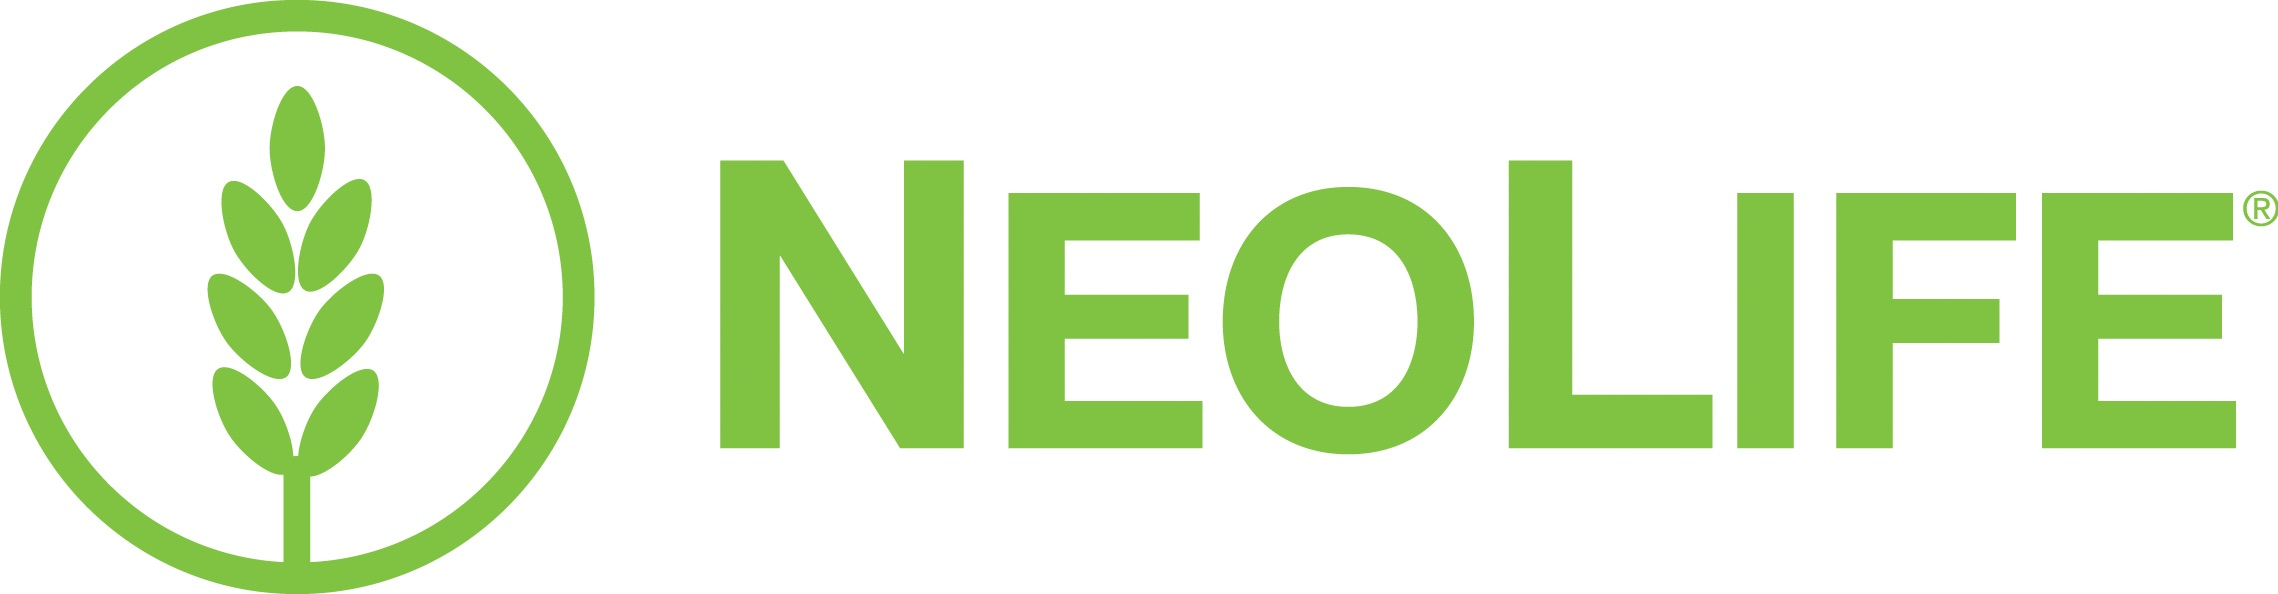 Neolifes Newest Game Changer Hits The Market With Neolife Sport 13047714 on Latest Writing A Press Release